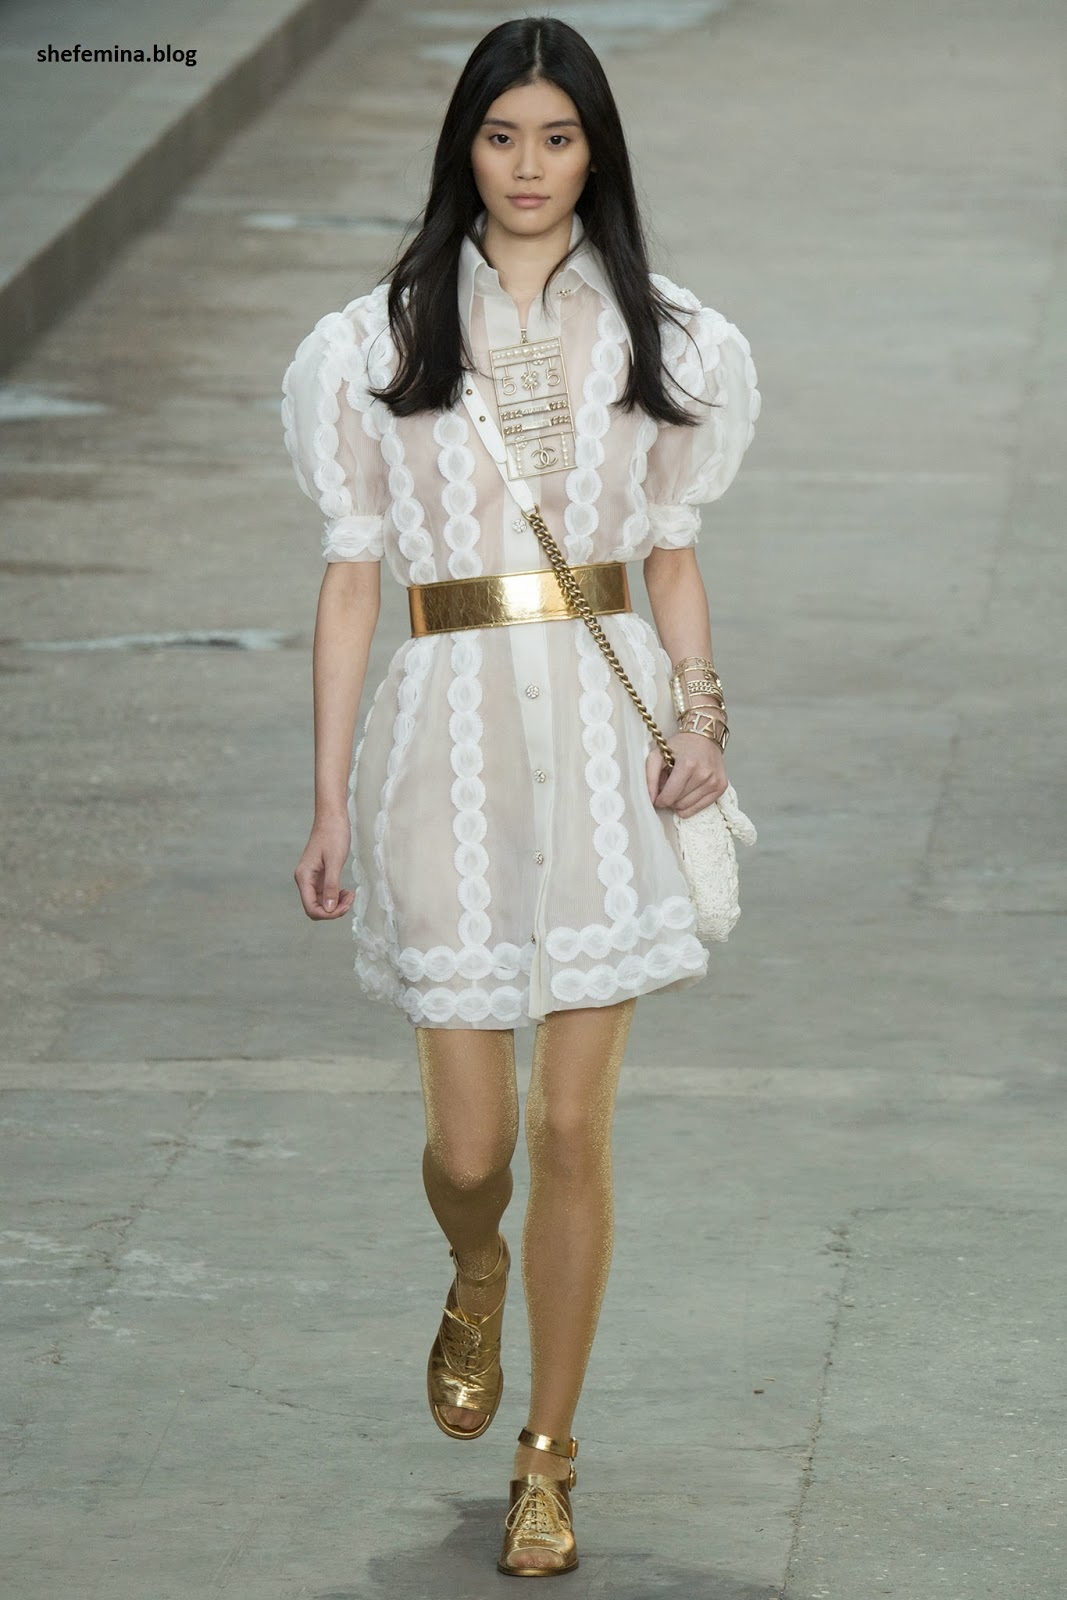 Chanel Spring 2015 dresses HD wallpaper 27